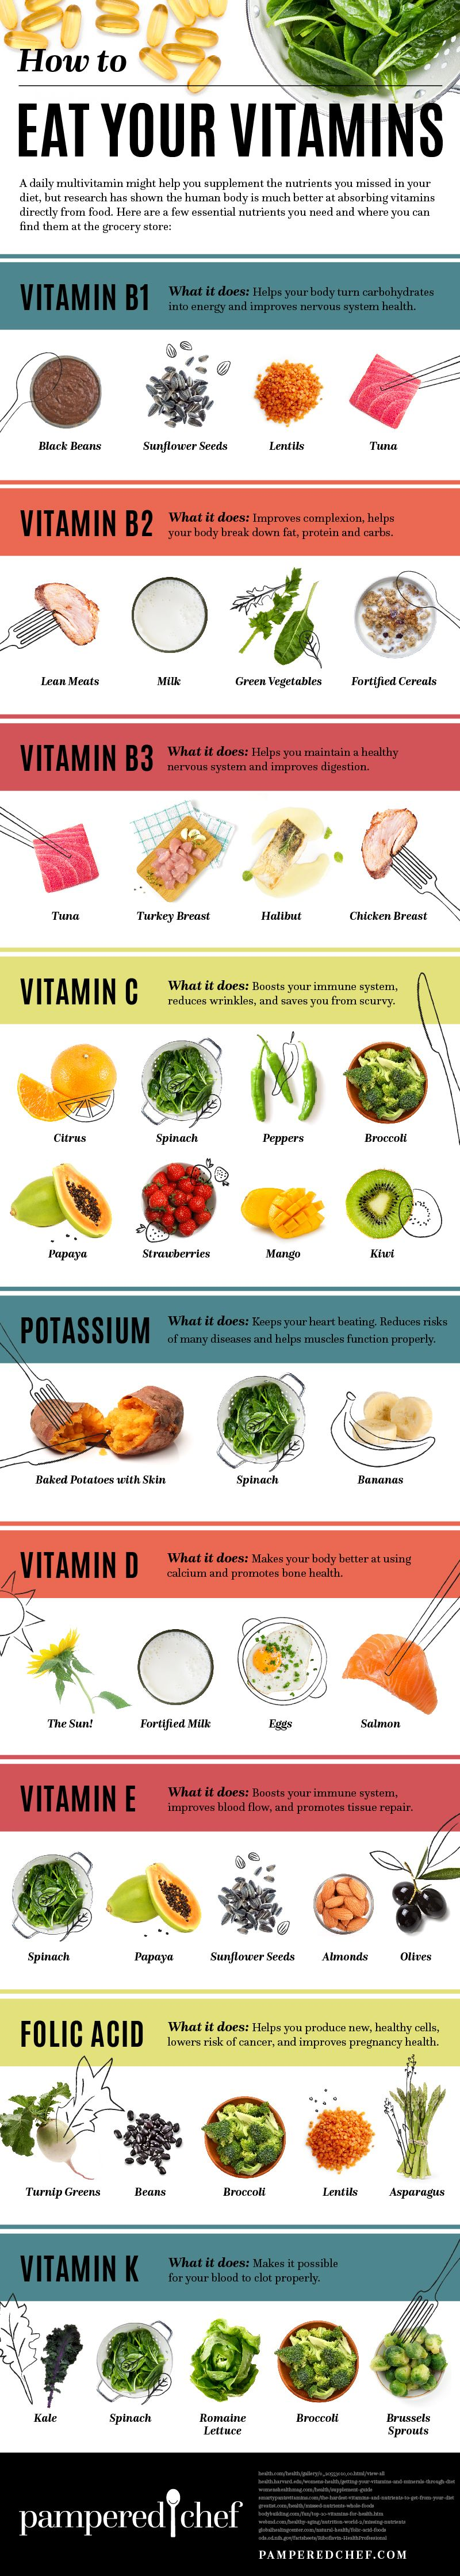 Eating Your Vitamins